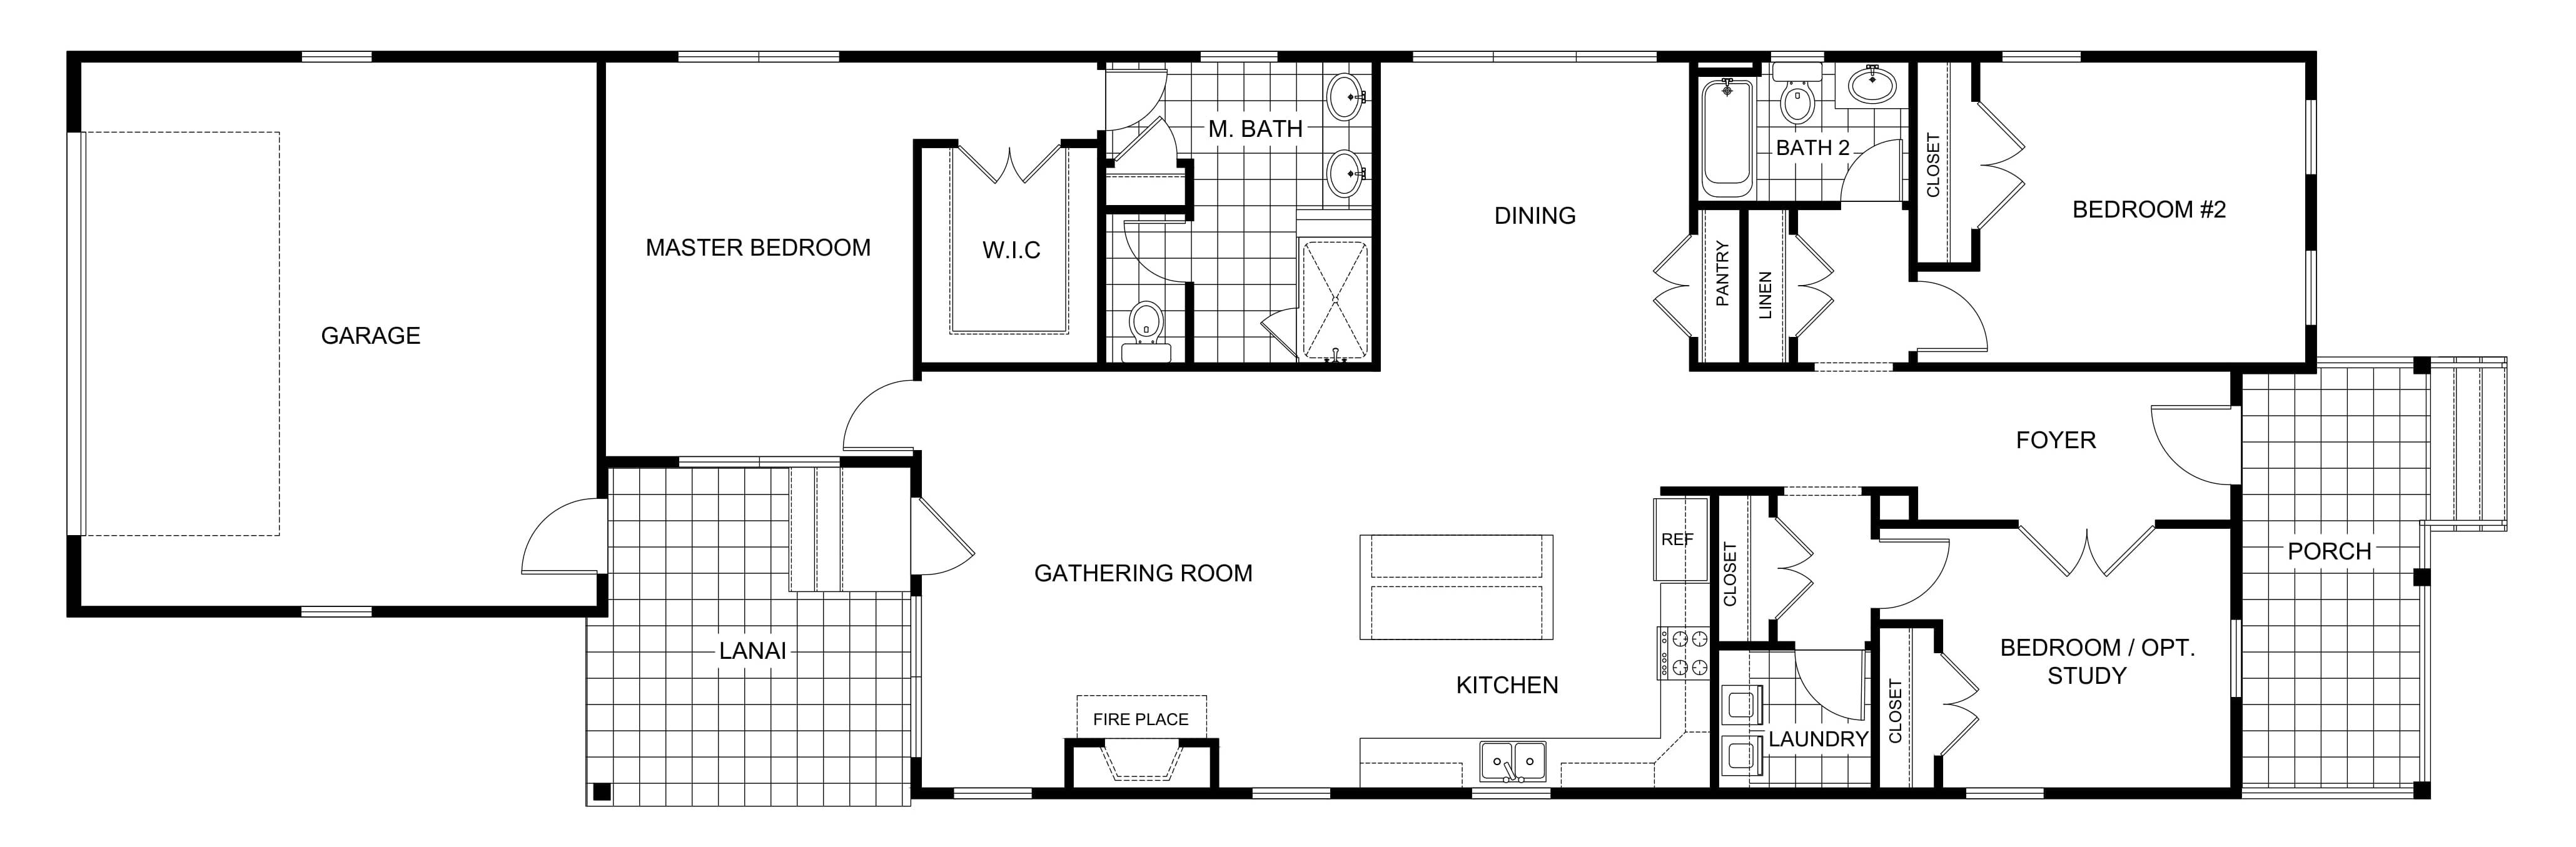 2D Floor Plan Drawings Are Important